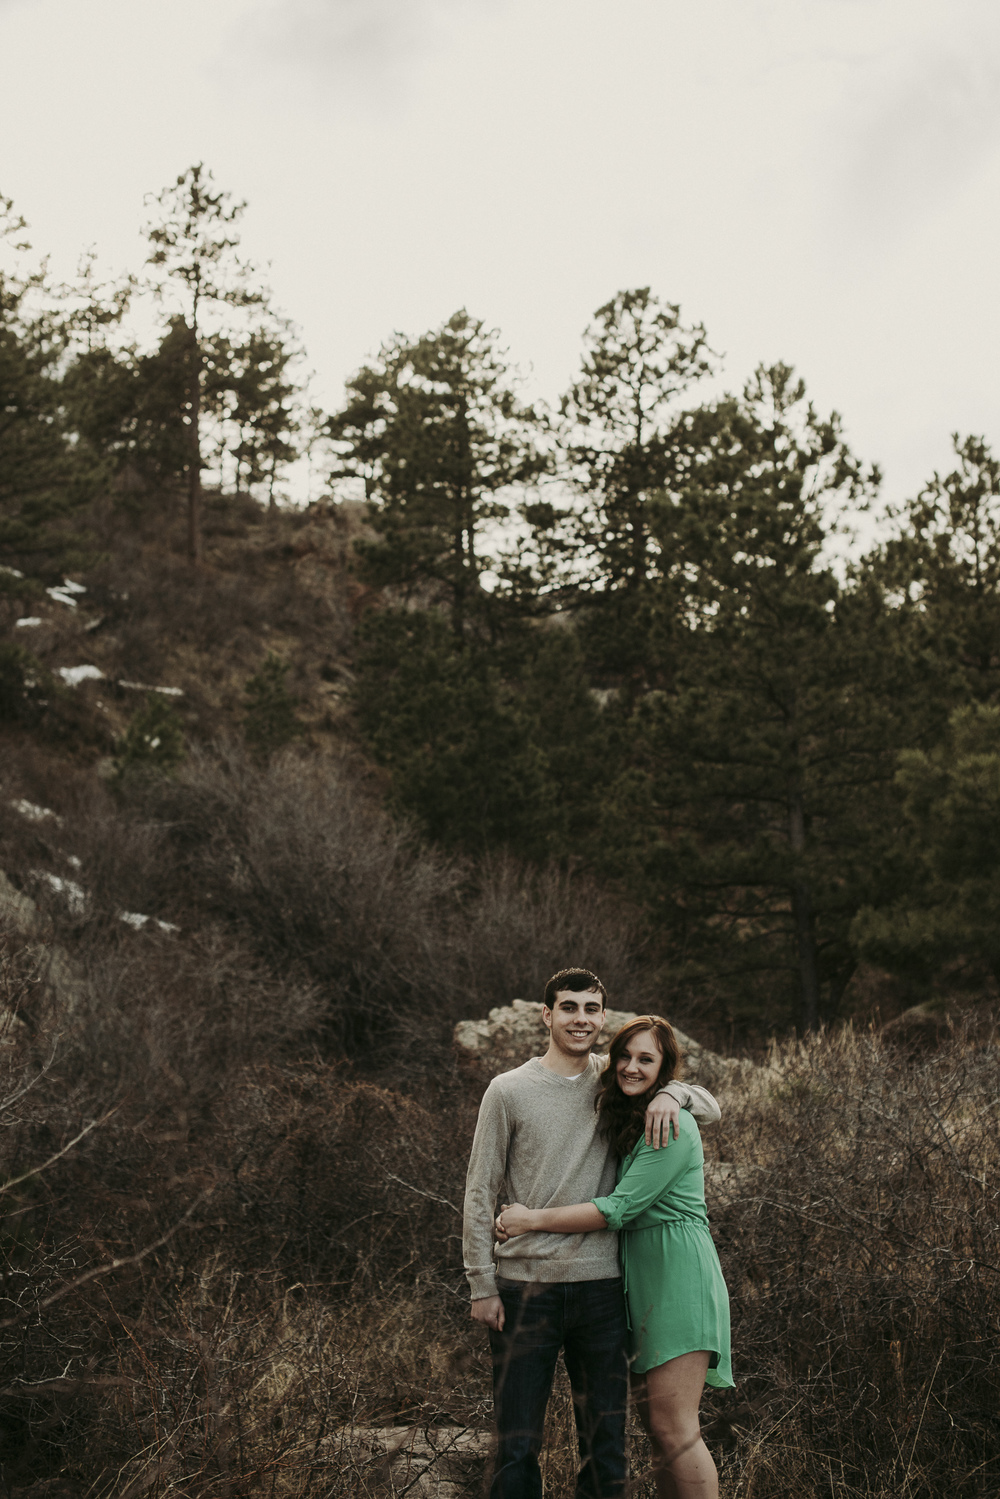 180416CHAI RYAN - COLORADO PHOTOGRAPHER - DEBI RAE PHOTOGRAPHY-8641.jpg